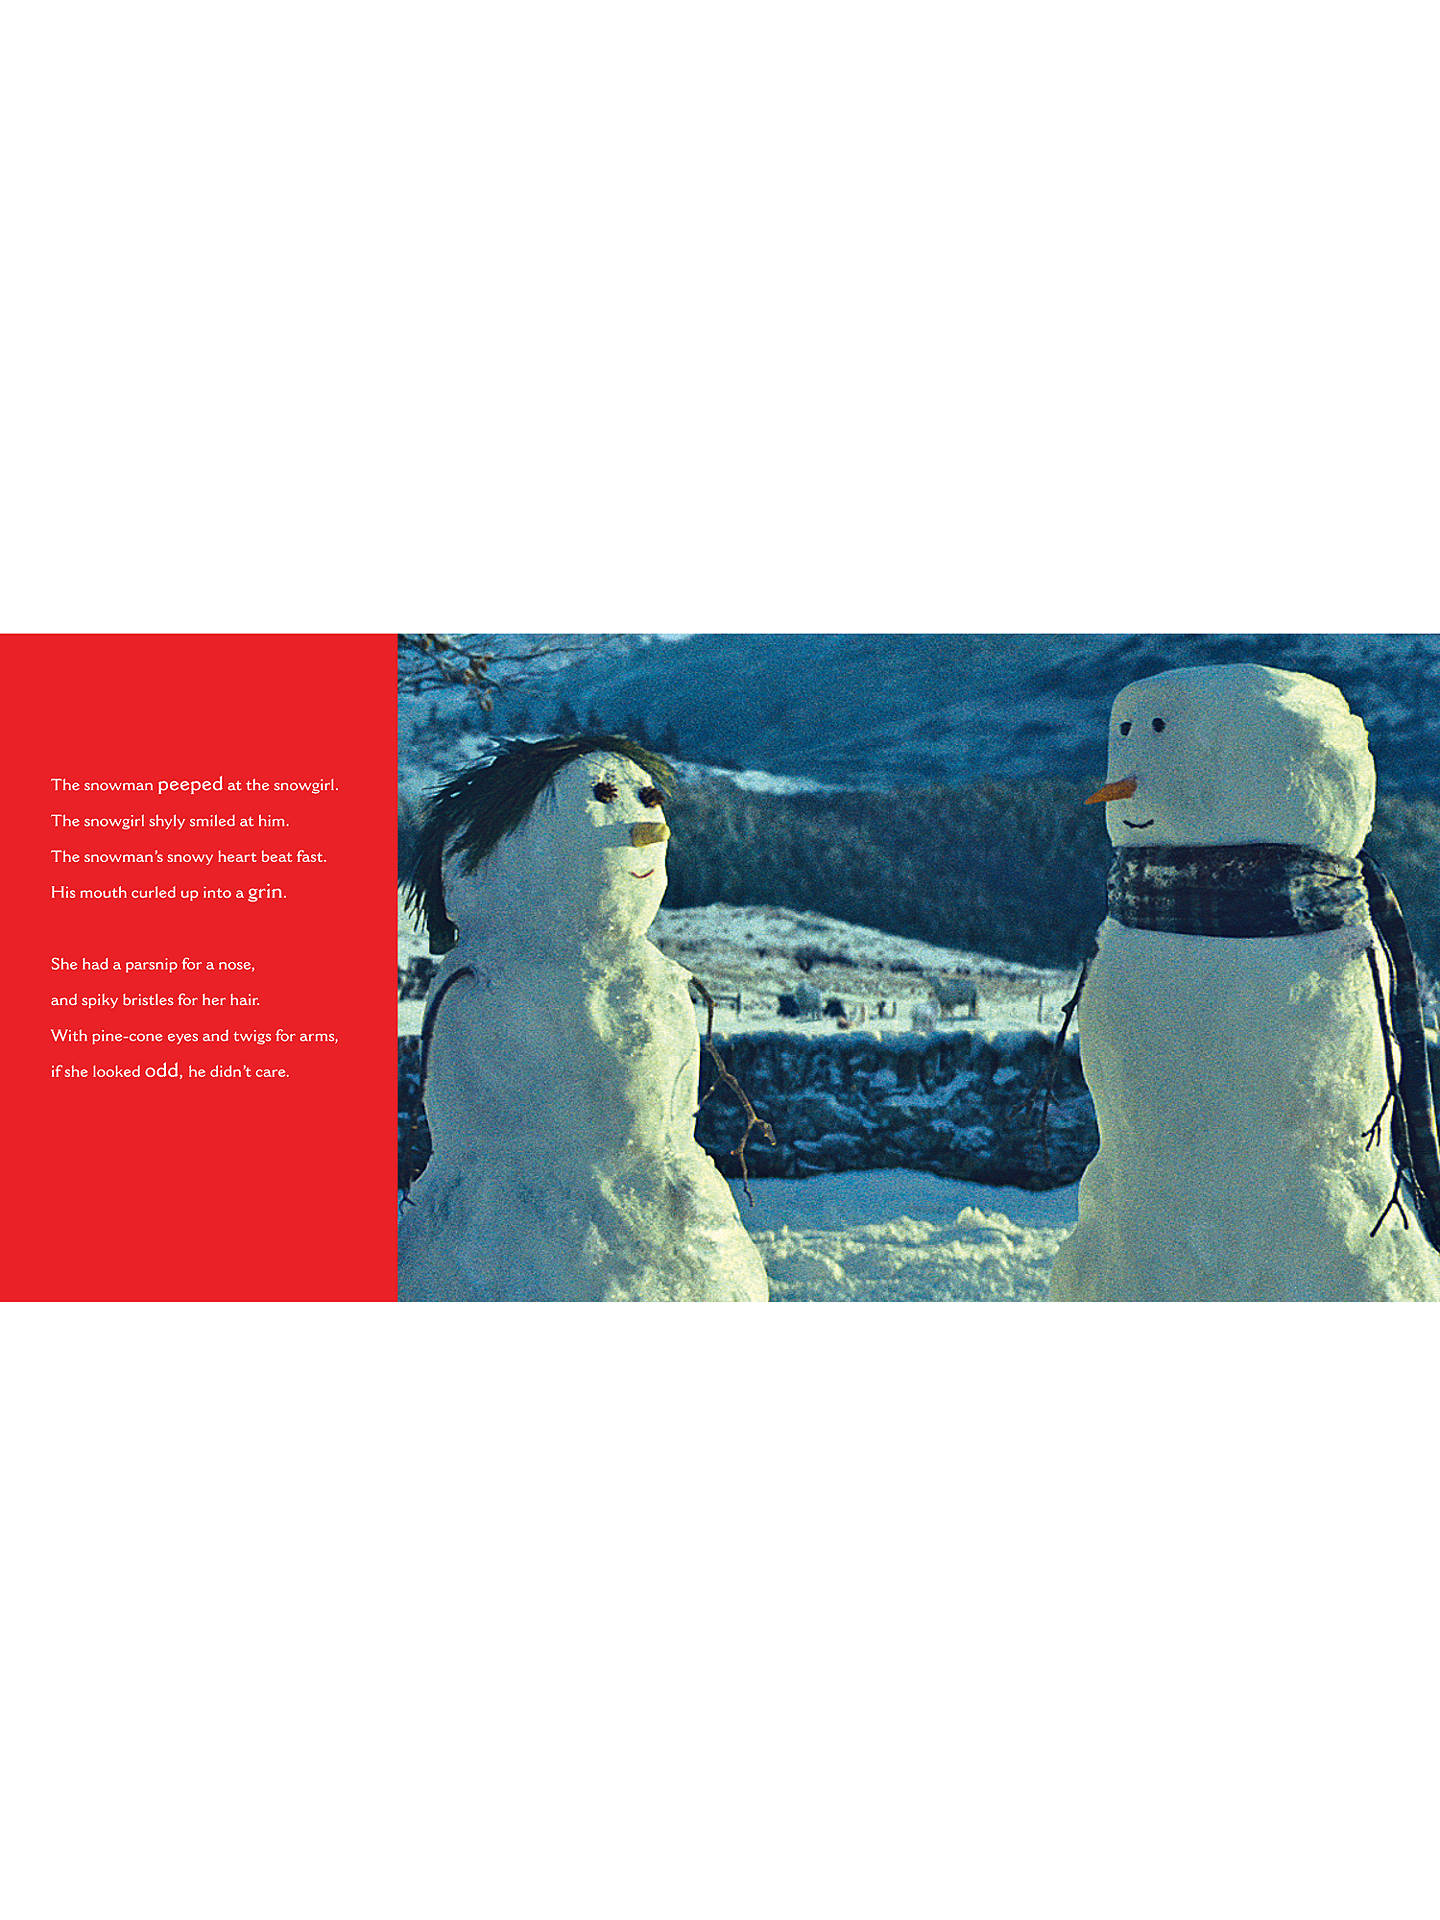 John Lewis Christmas Advert 2012.The Snowman S Journey Book Based On The John Lewis